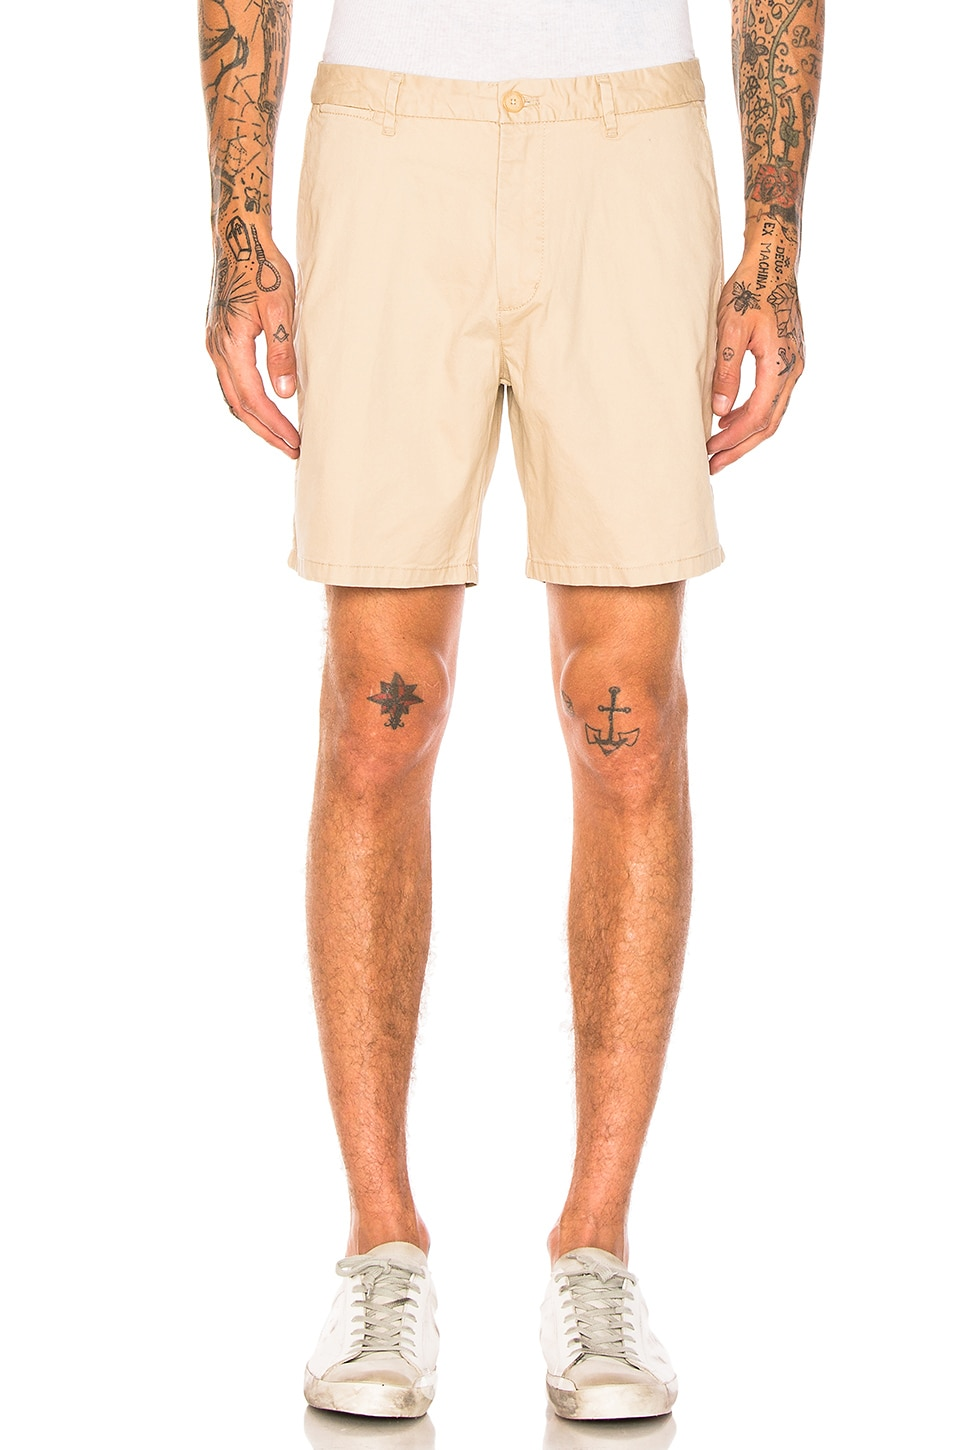 Classic Chino Shorts by Scotch & Soda